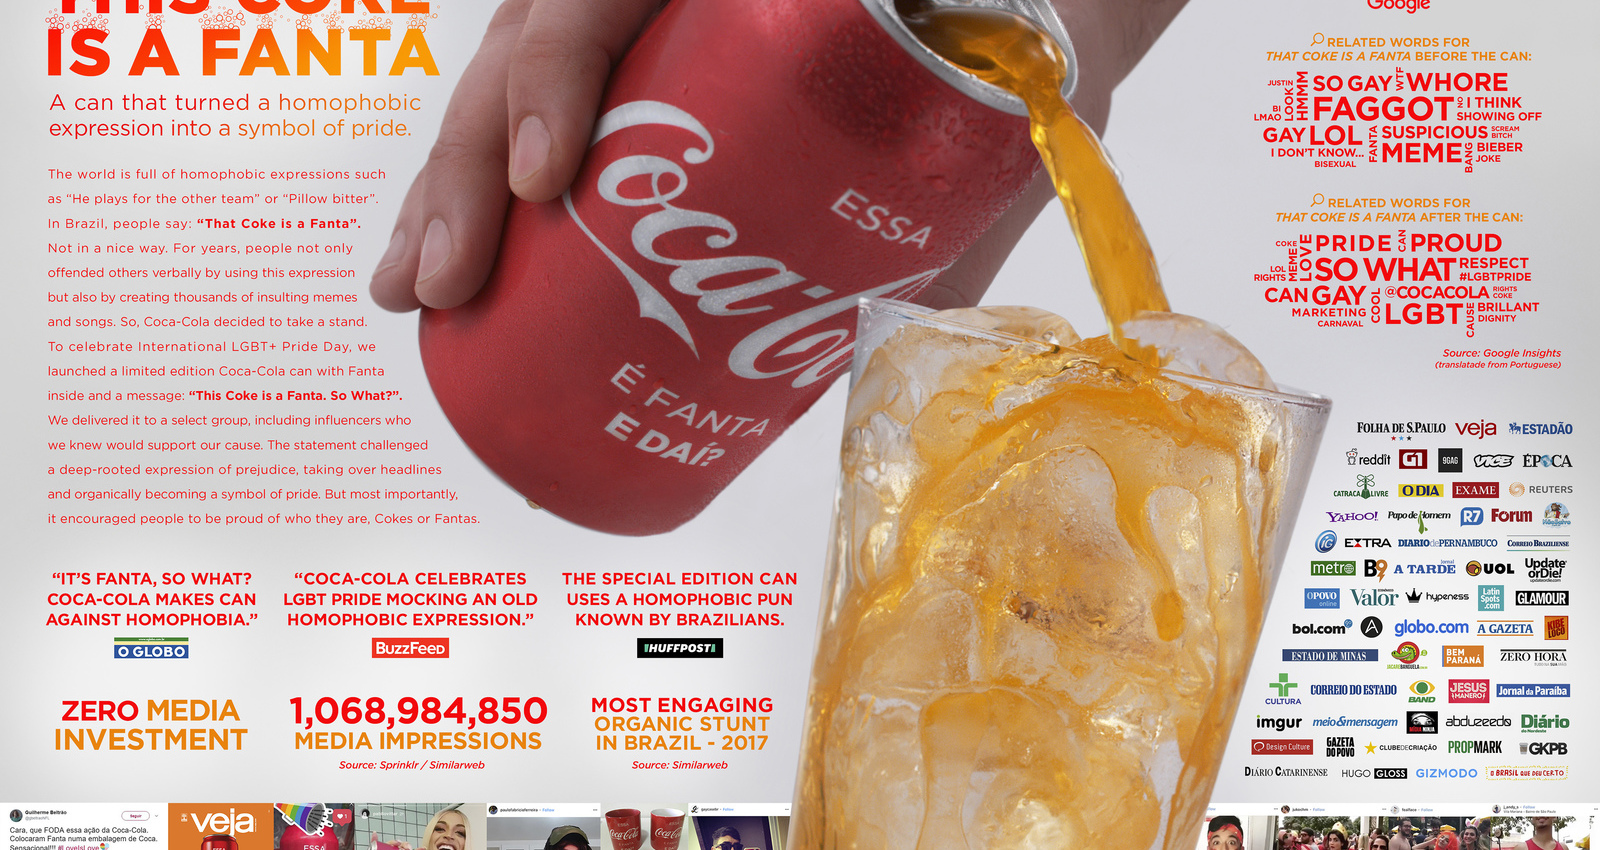 This Coke is a Fanta